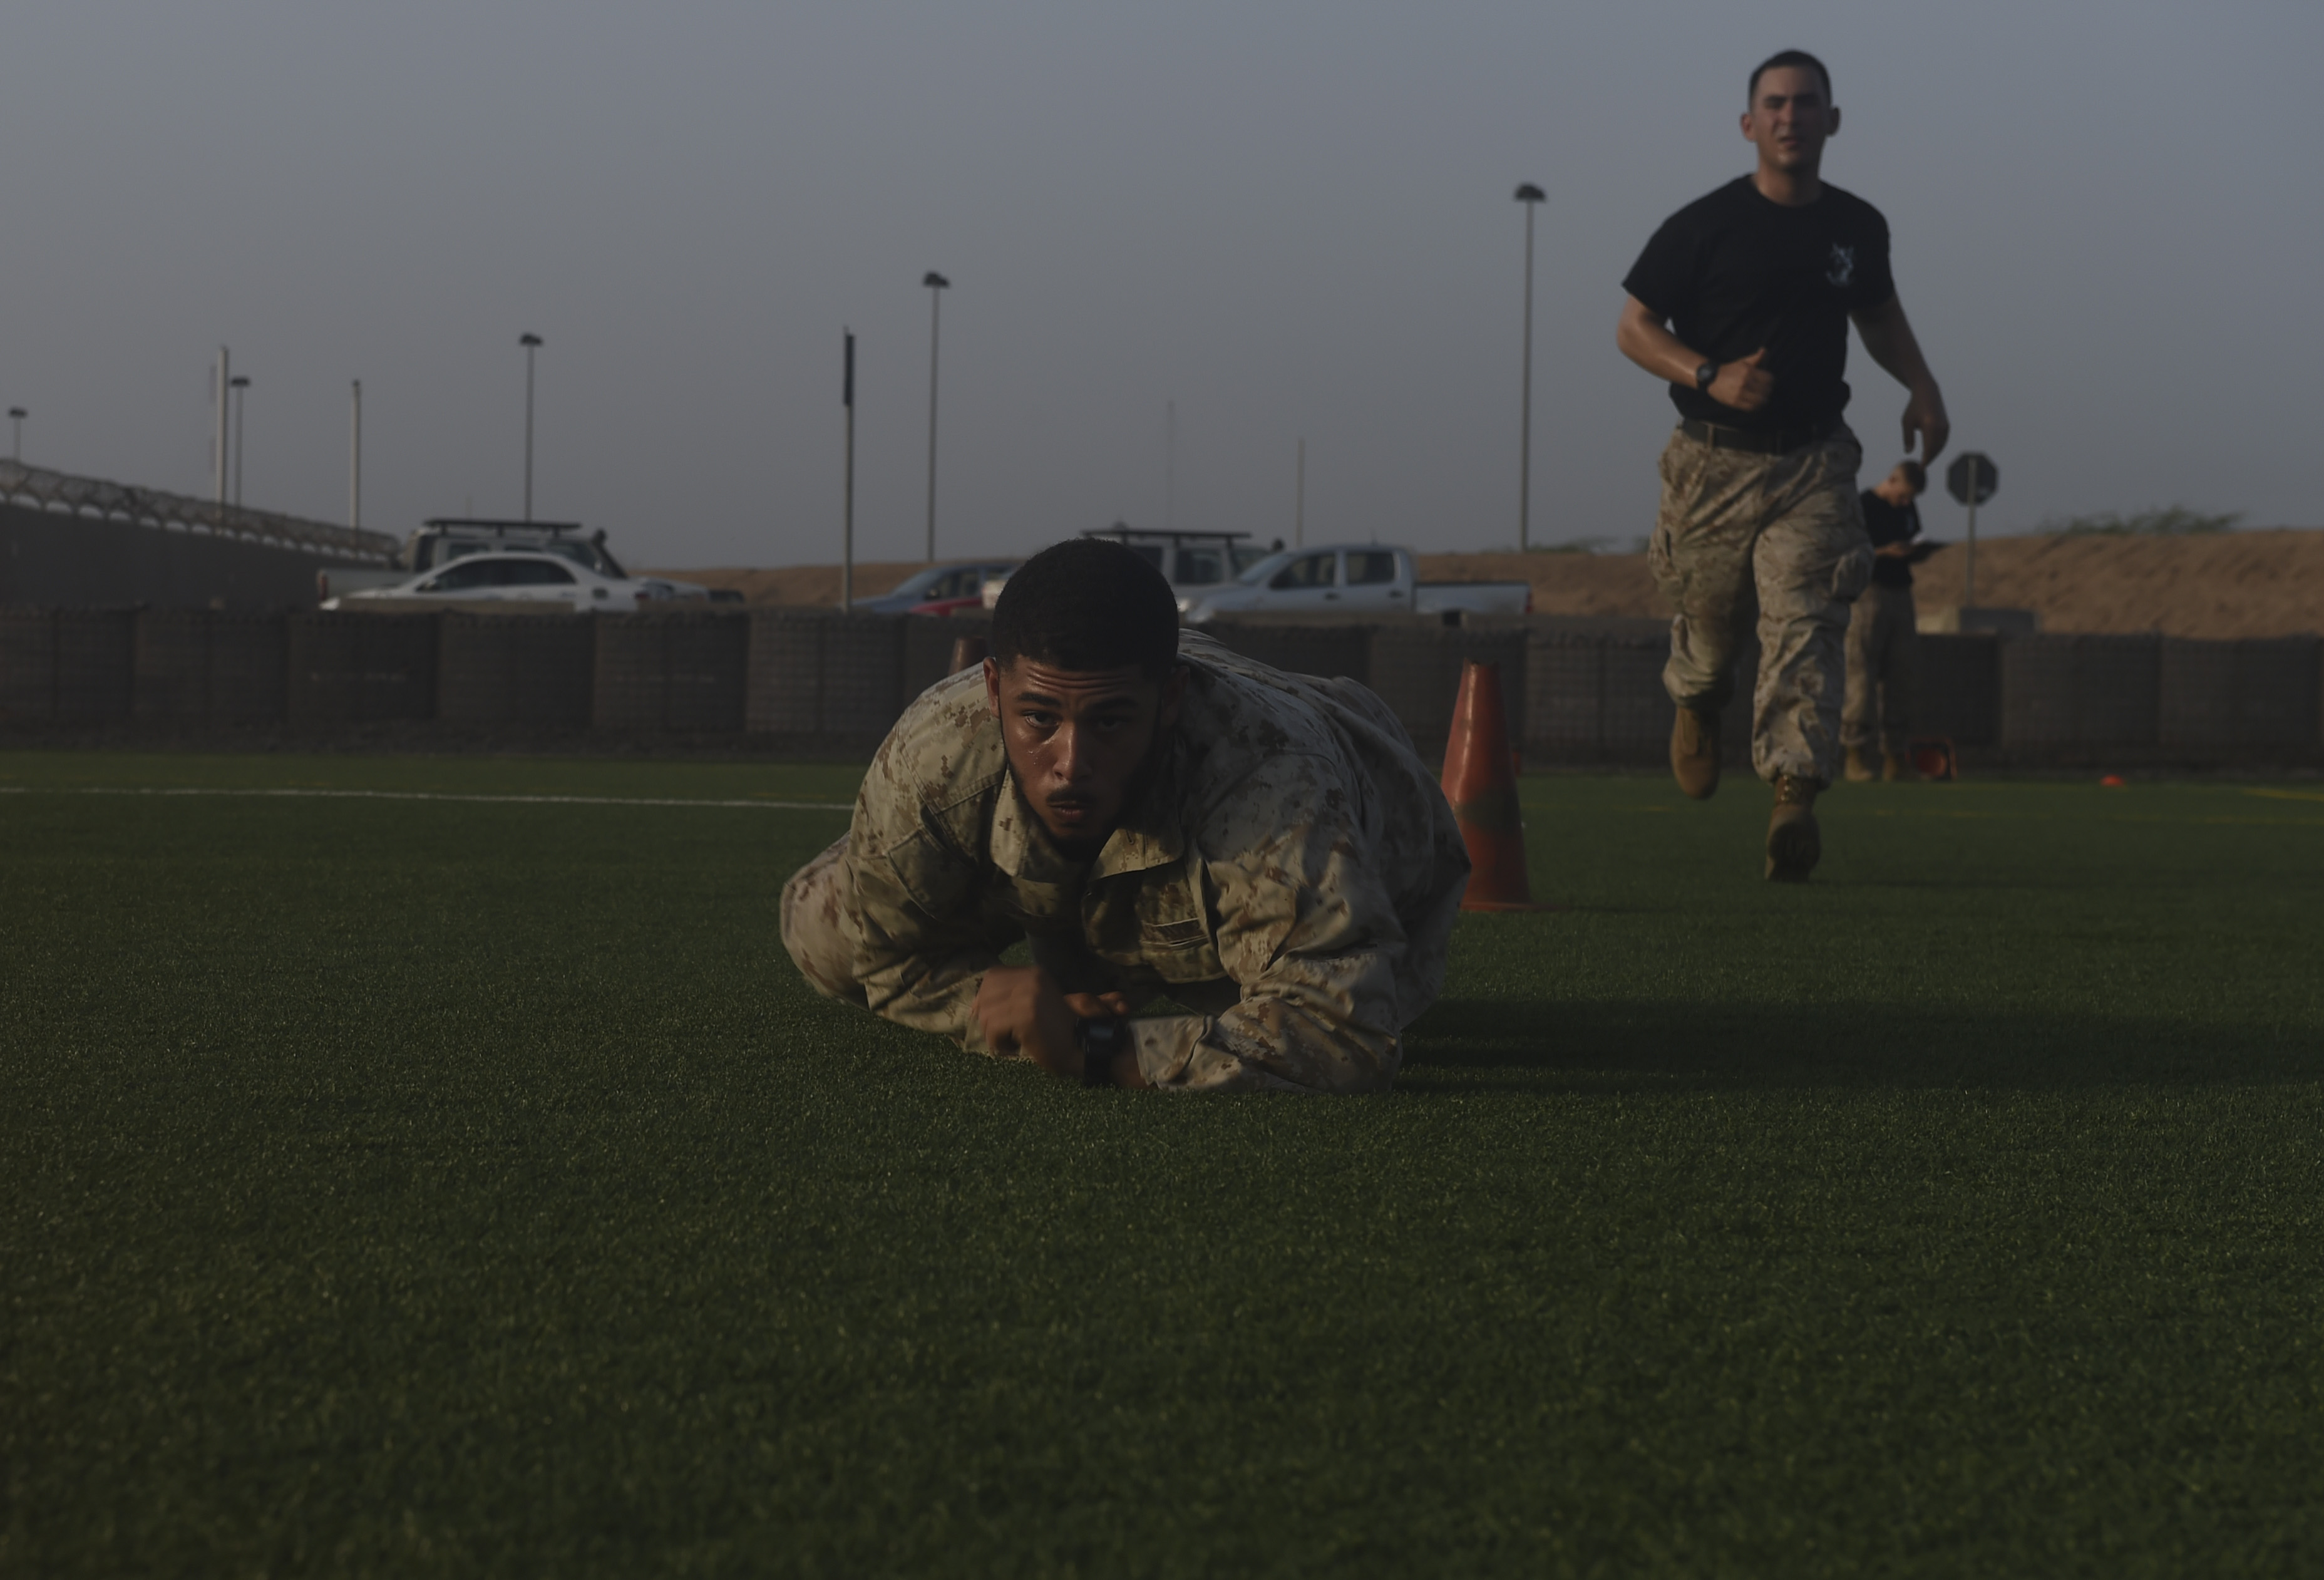 U.S. Marine Corps Cpl. Cameron Smith, assigned to Combined Joint Task Force-Horn of Africa, low-crawls while completing a combat fitness test during the Corporal's Course at Camp Lemonnier, Djibouti, May 31, 2017. During the Corporal's Course, the students received more than 120 hours of instruction over the course of 16 days with a curriculum that consisted of various subjects to include; customs and traditions, land navigation, communications, social media interaction, leadership, and combat fitness. (U.S. Air Force photo by Staff Sgt. Eboni Prince)